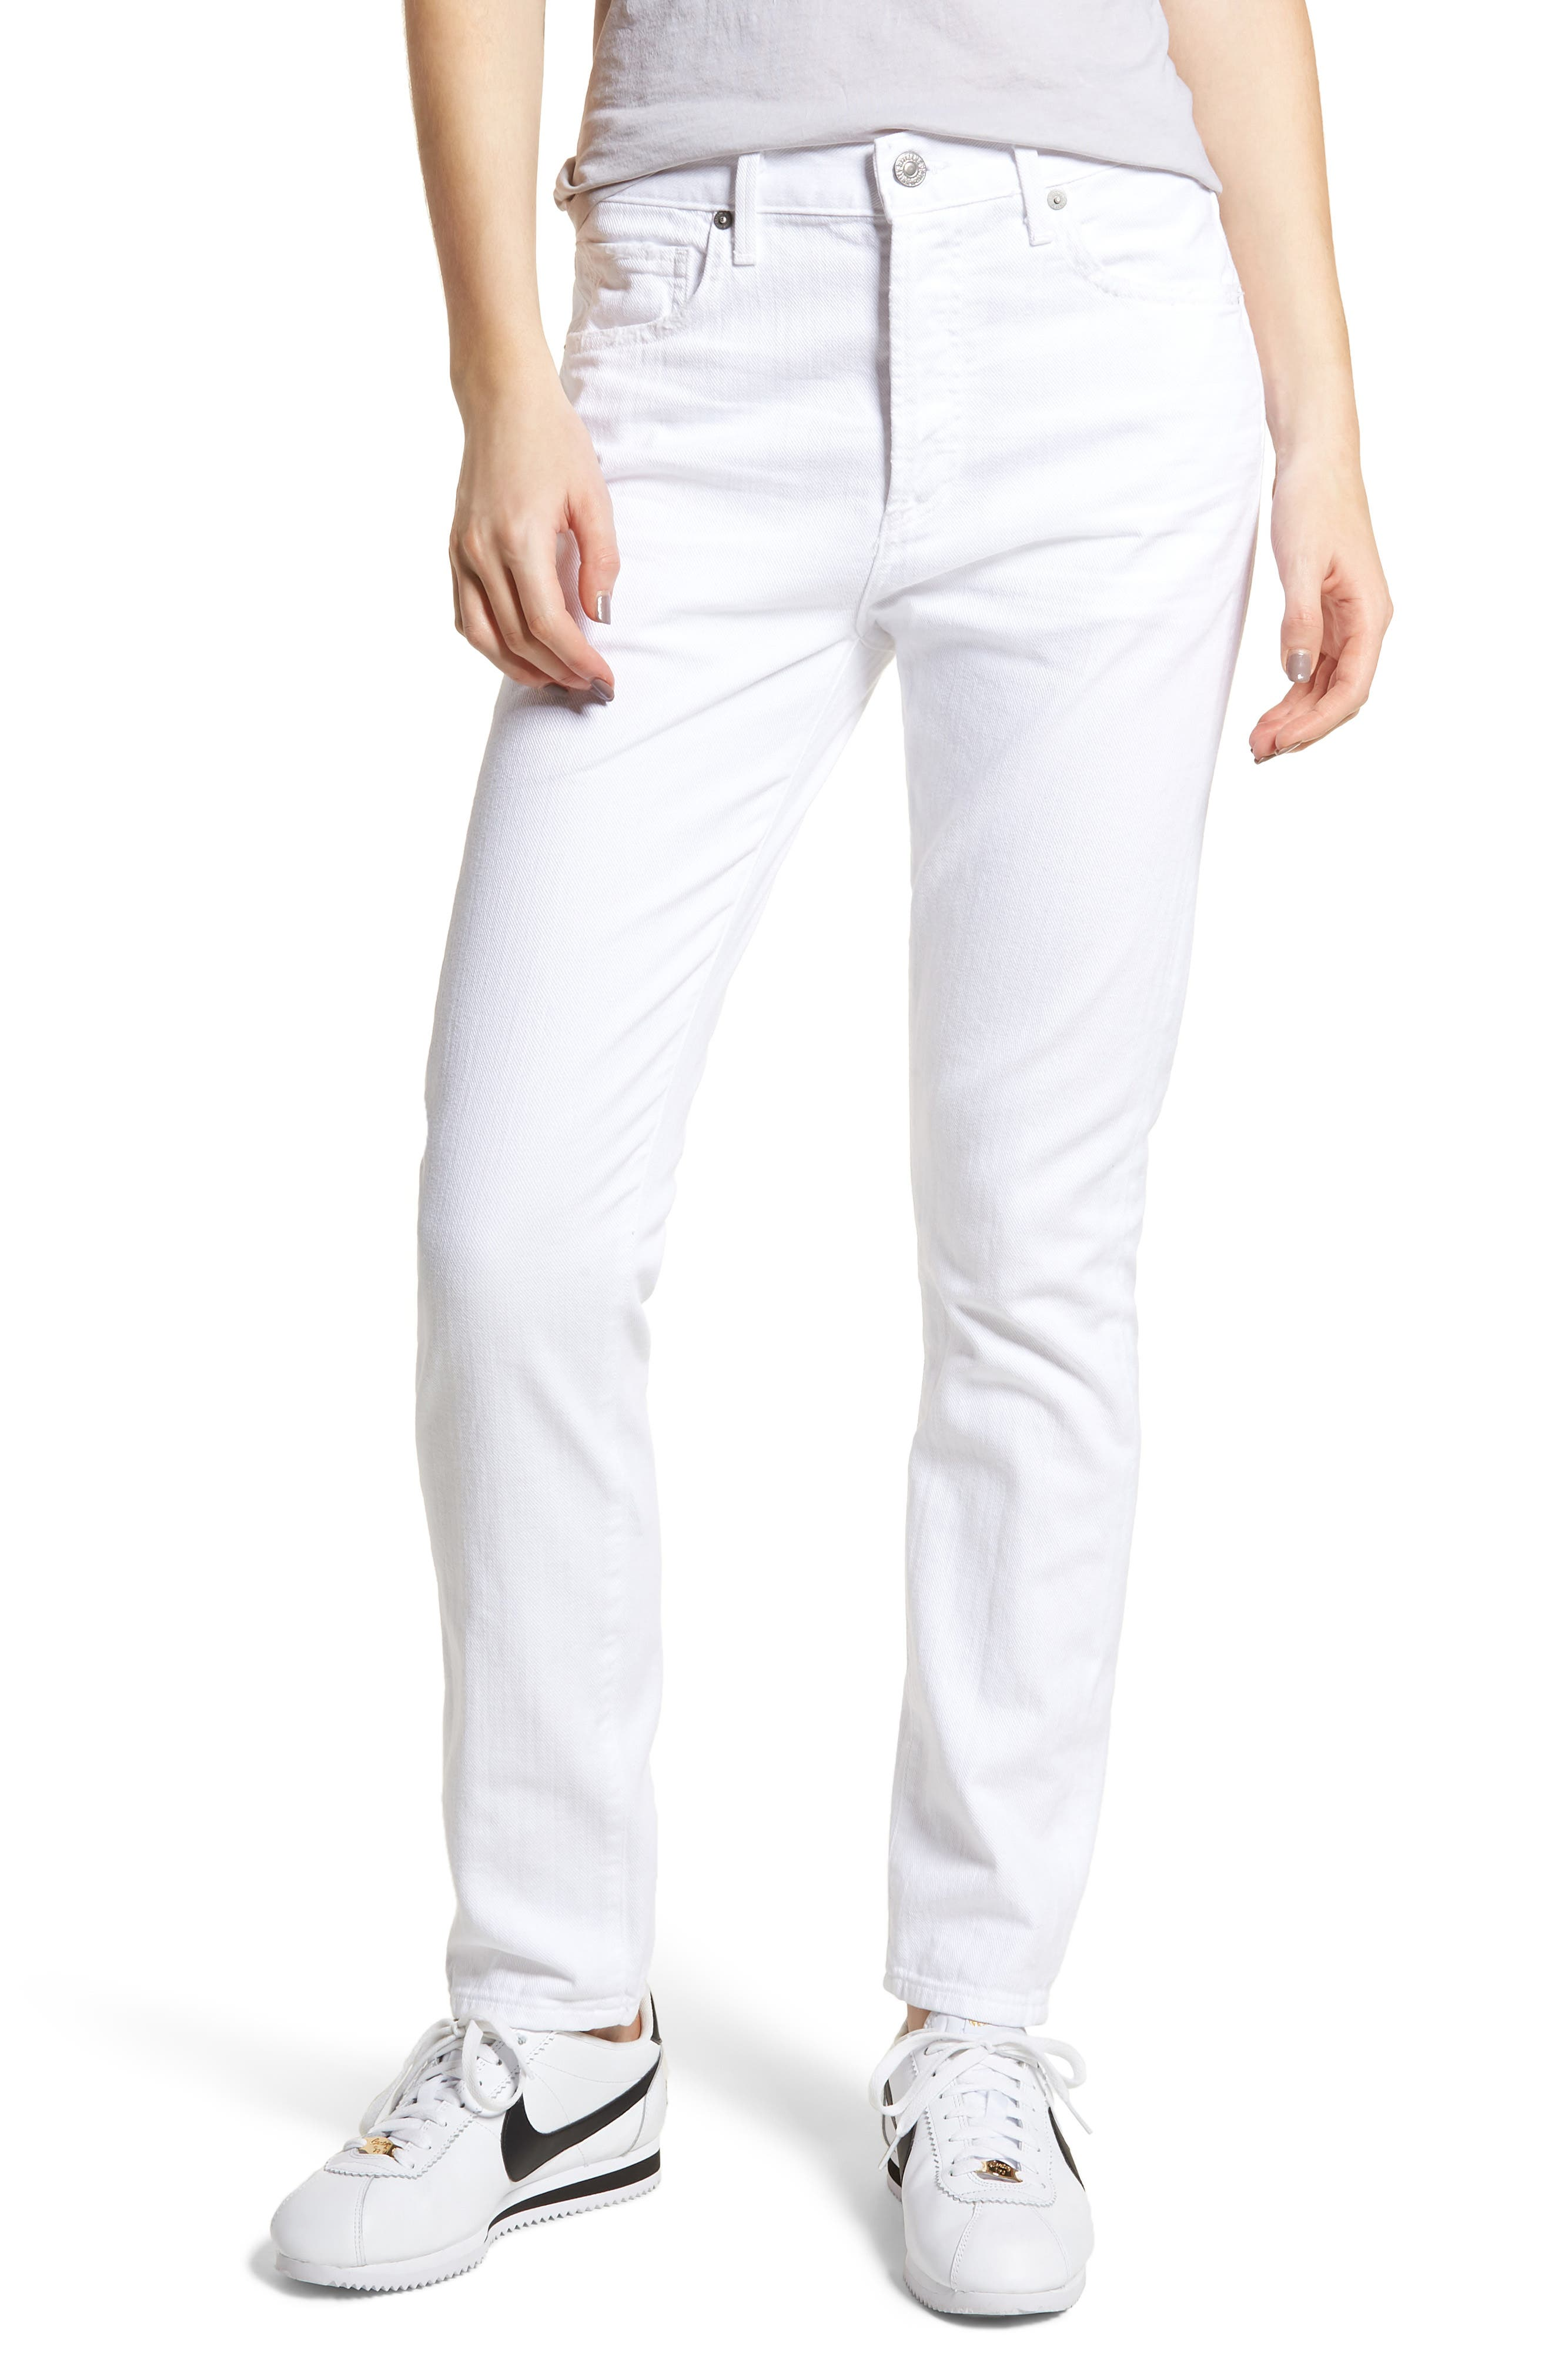 CITIZENS OF HUMANITY, Corey Slouchy Slim Jeans, Main thumbnail 1, color, DISTRESSED WHITE